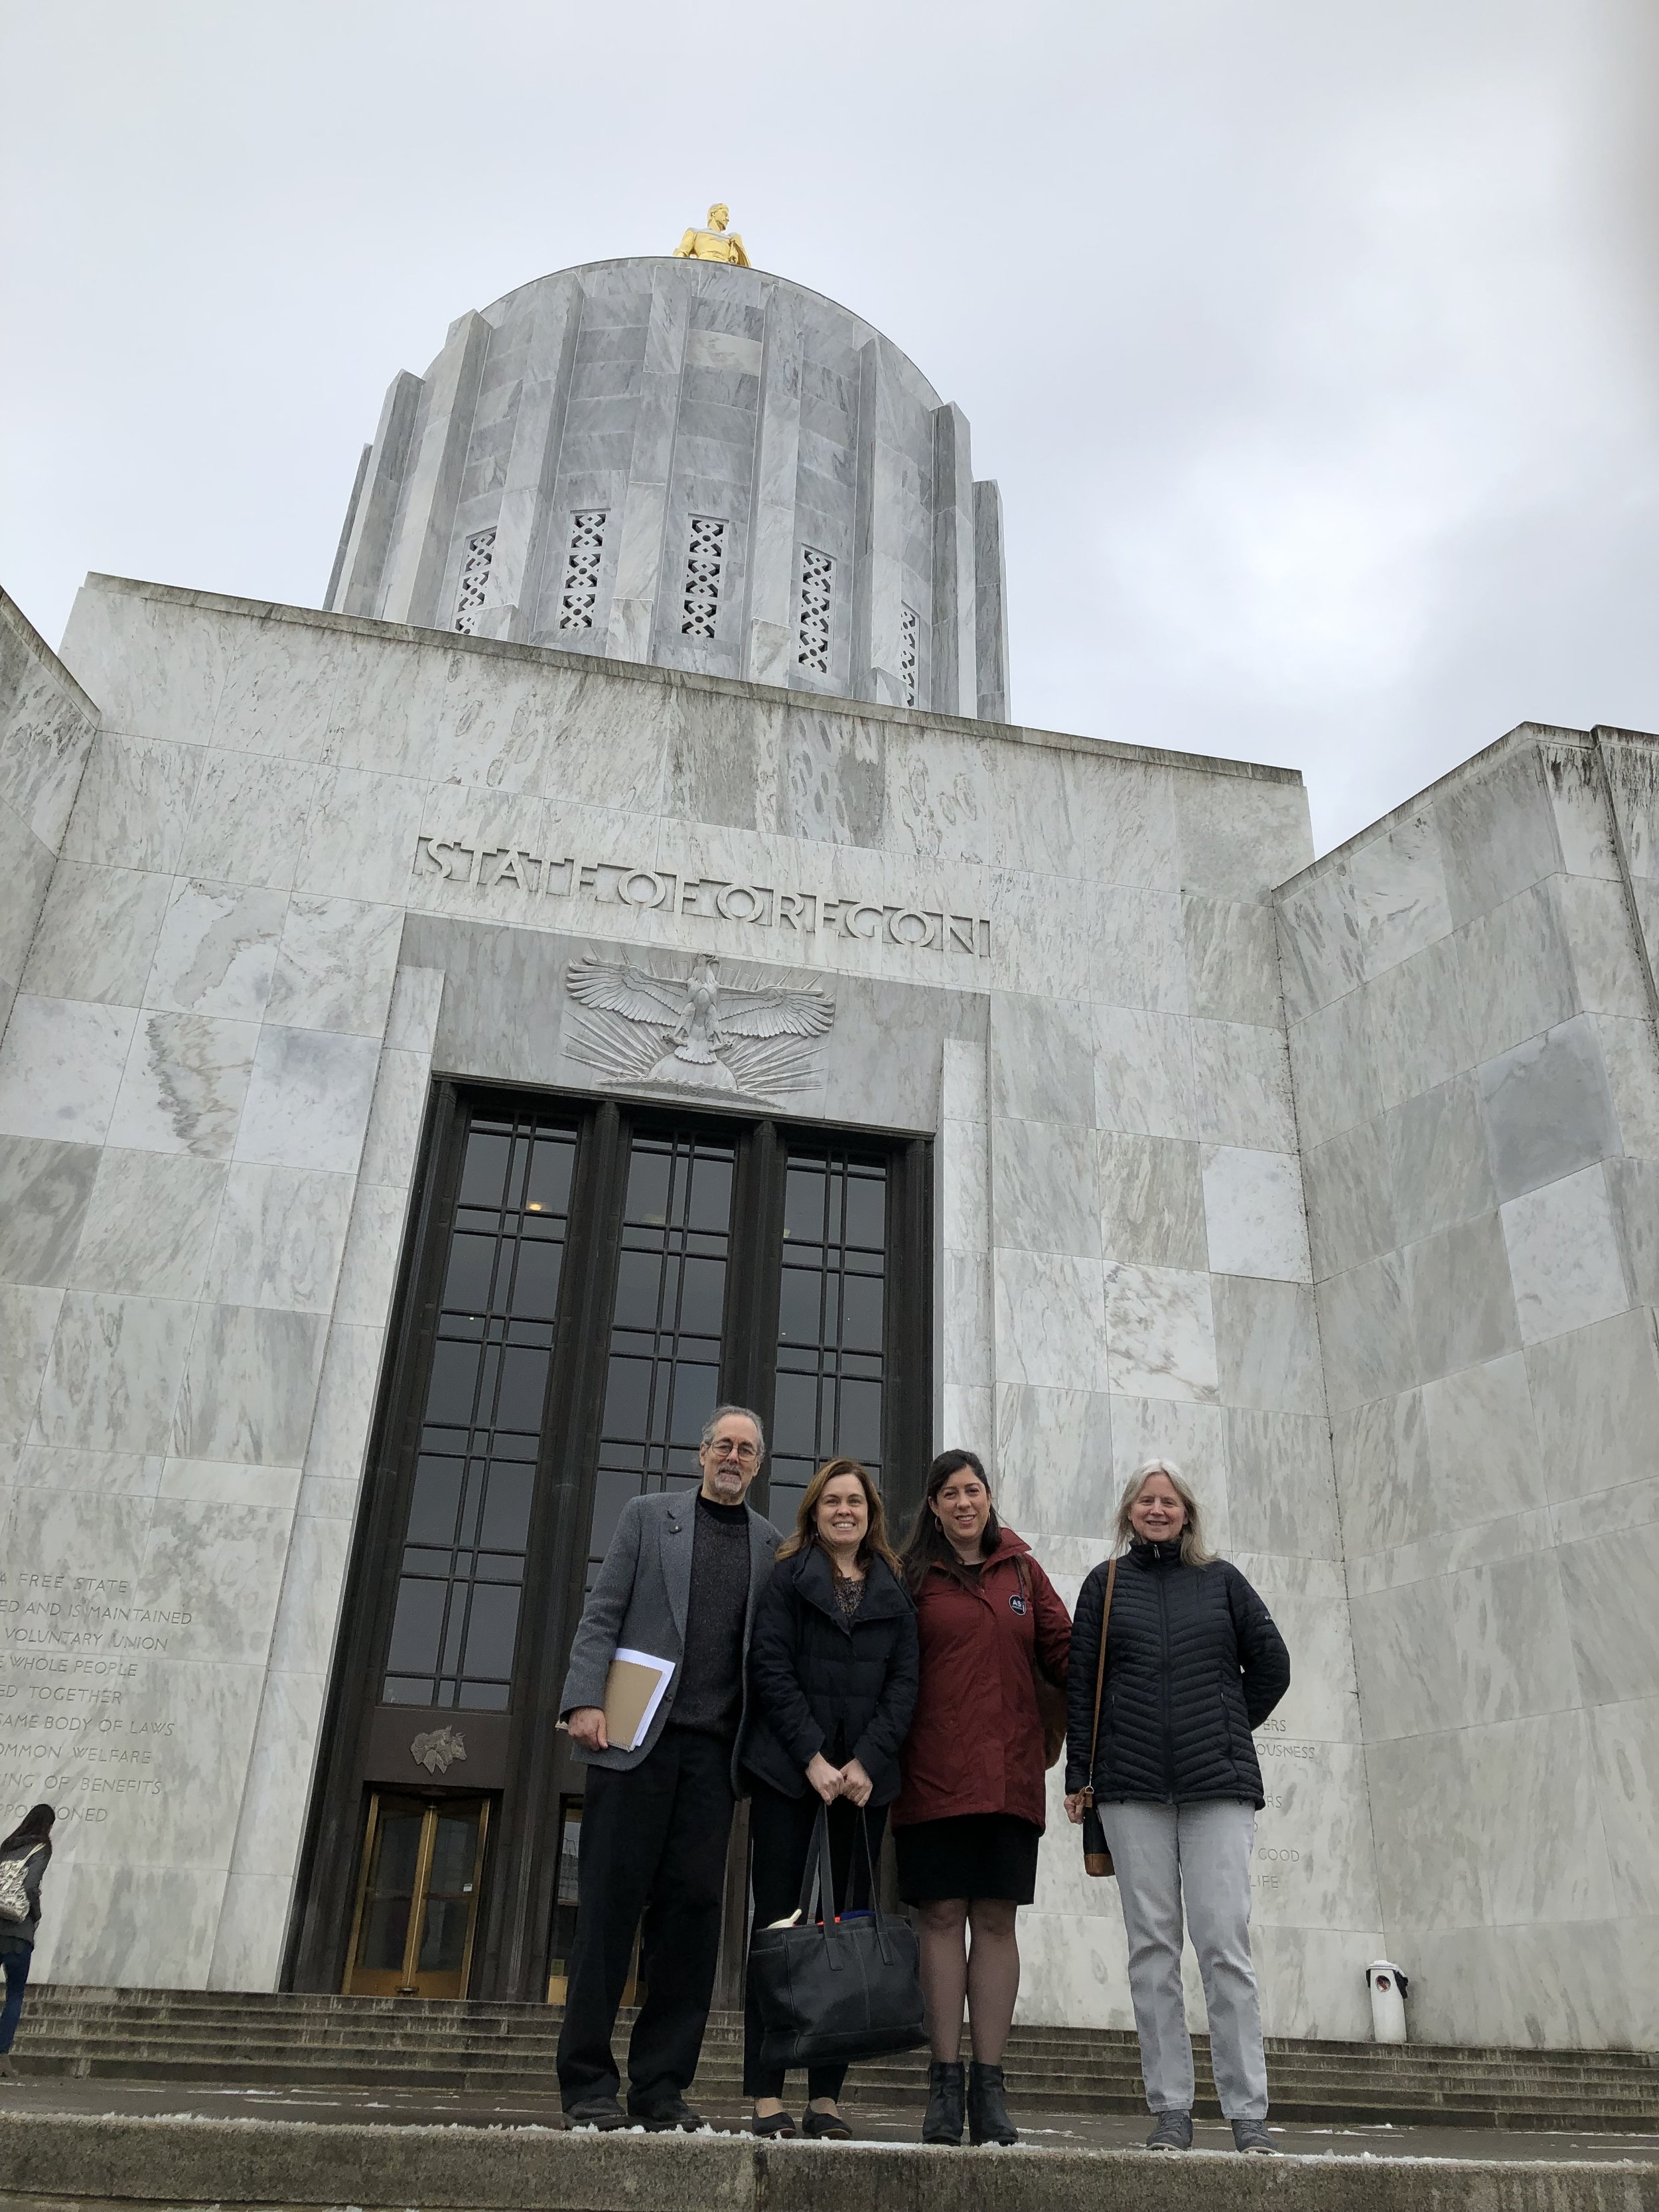 Heading into the Oregon State Capitol in Salem